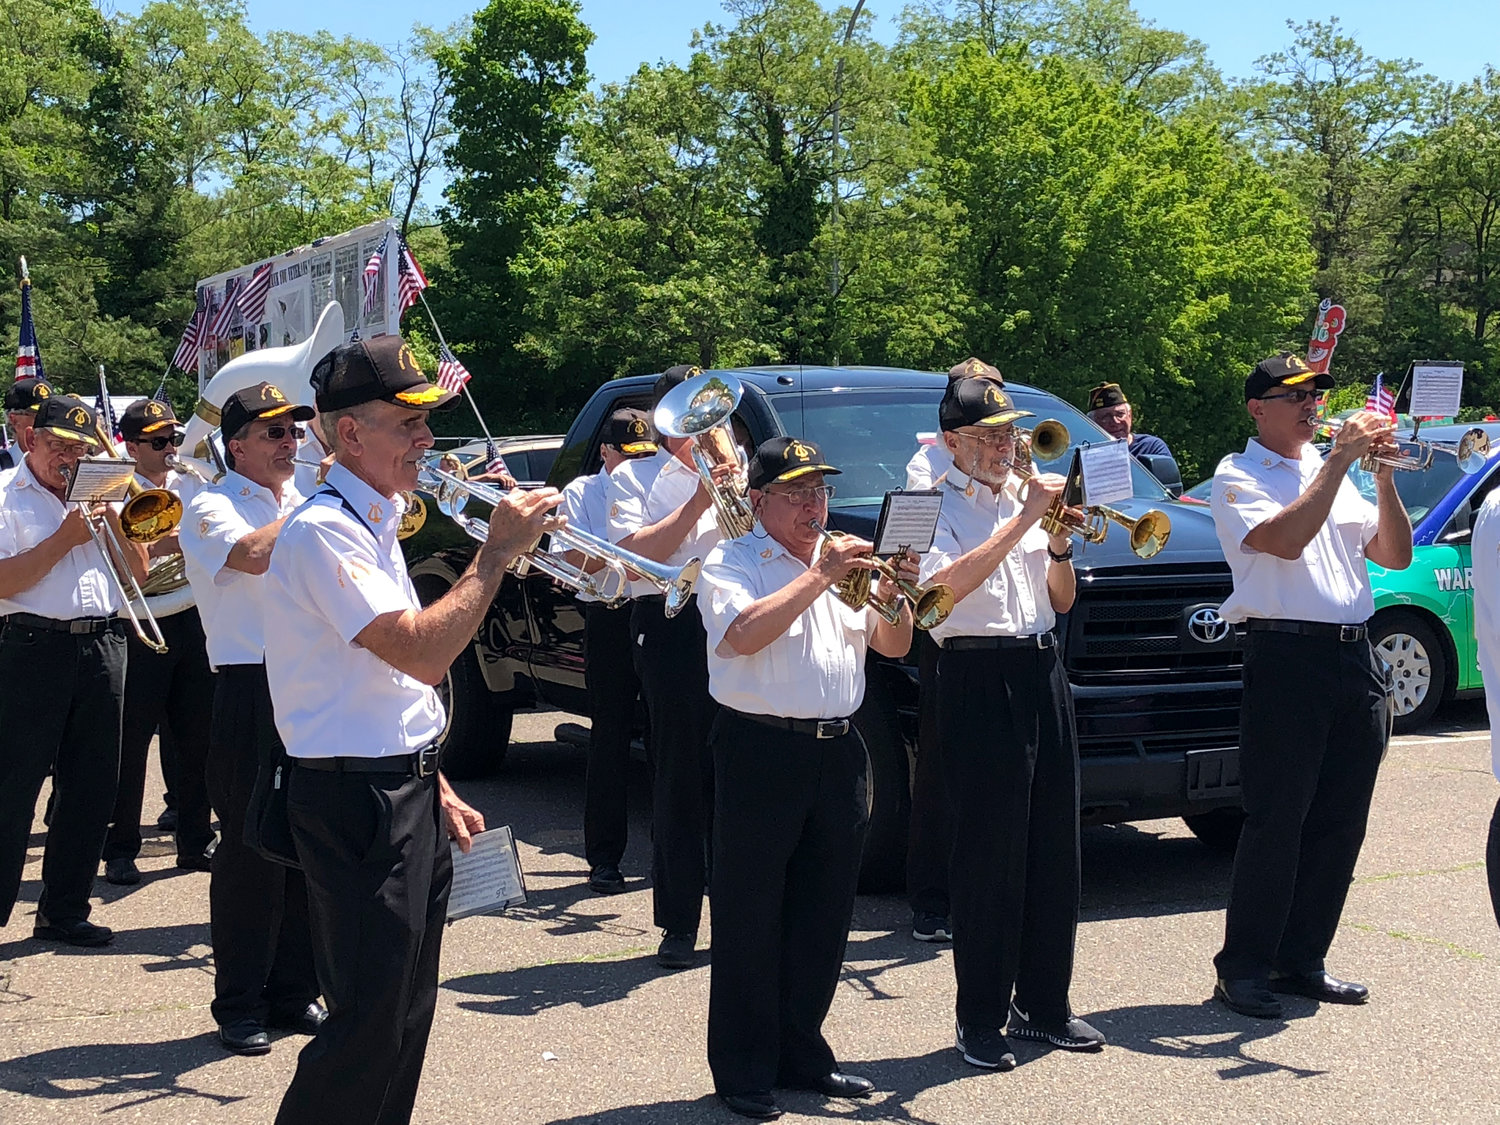 The Our Lady of Good Counsel Band, also known as the Mazza Band, tuned up before marching and performing in the Inwood Memorial Day Parade on May 26.